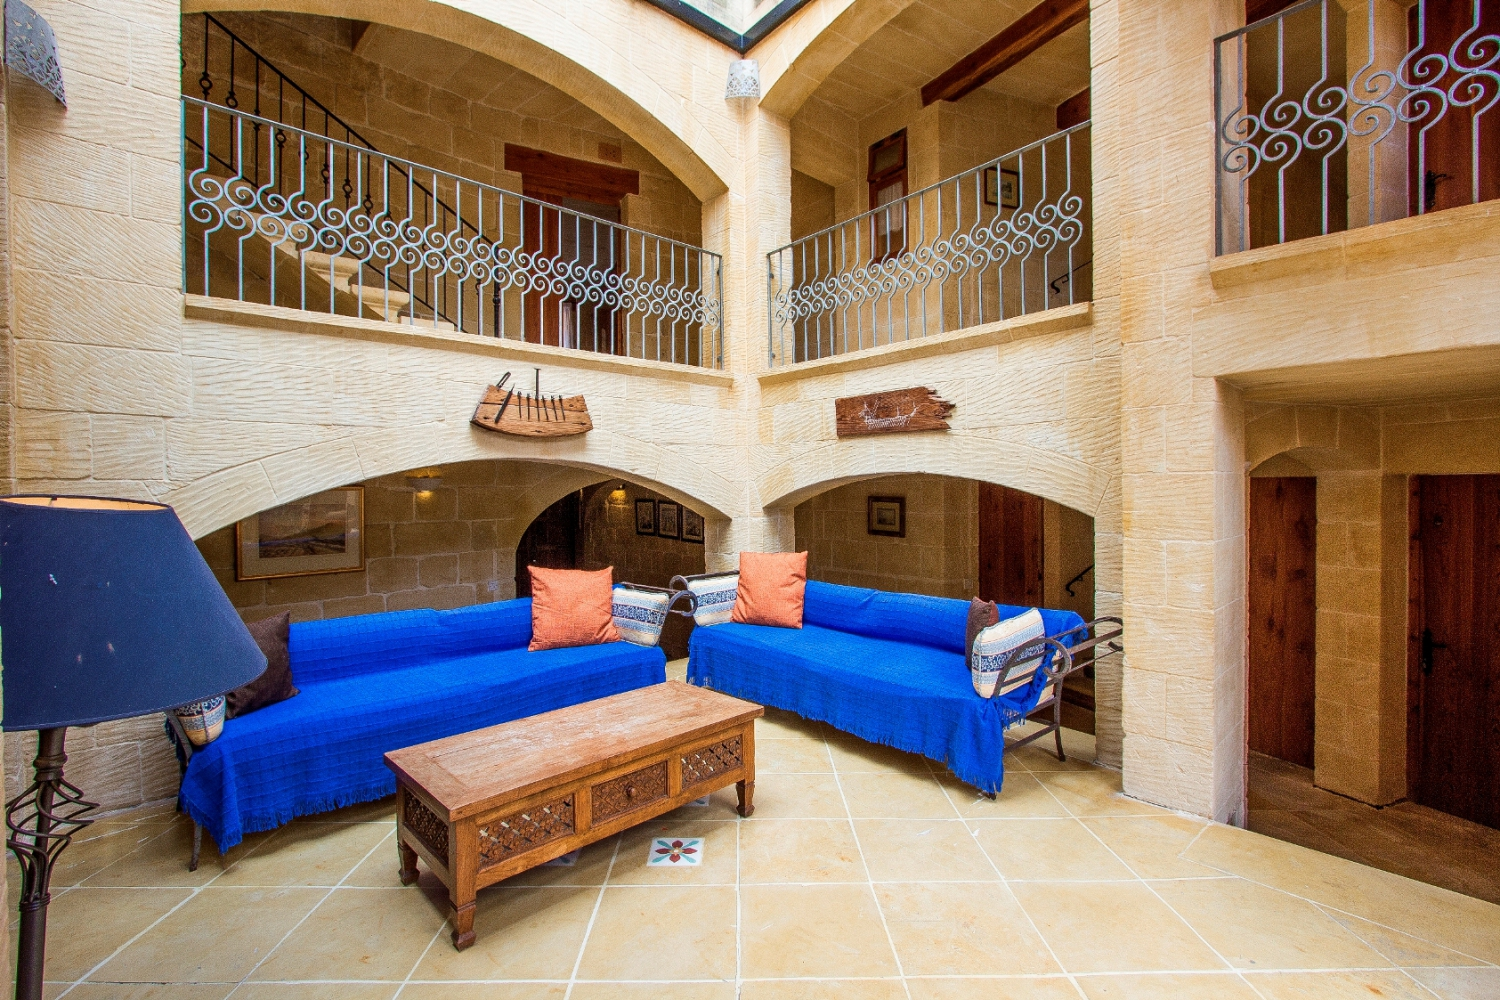 Top 5 Self-Catering Stays in Malta